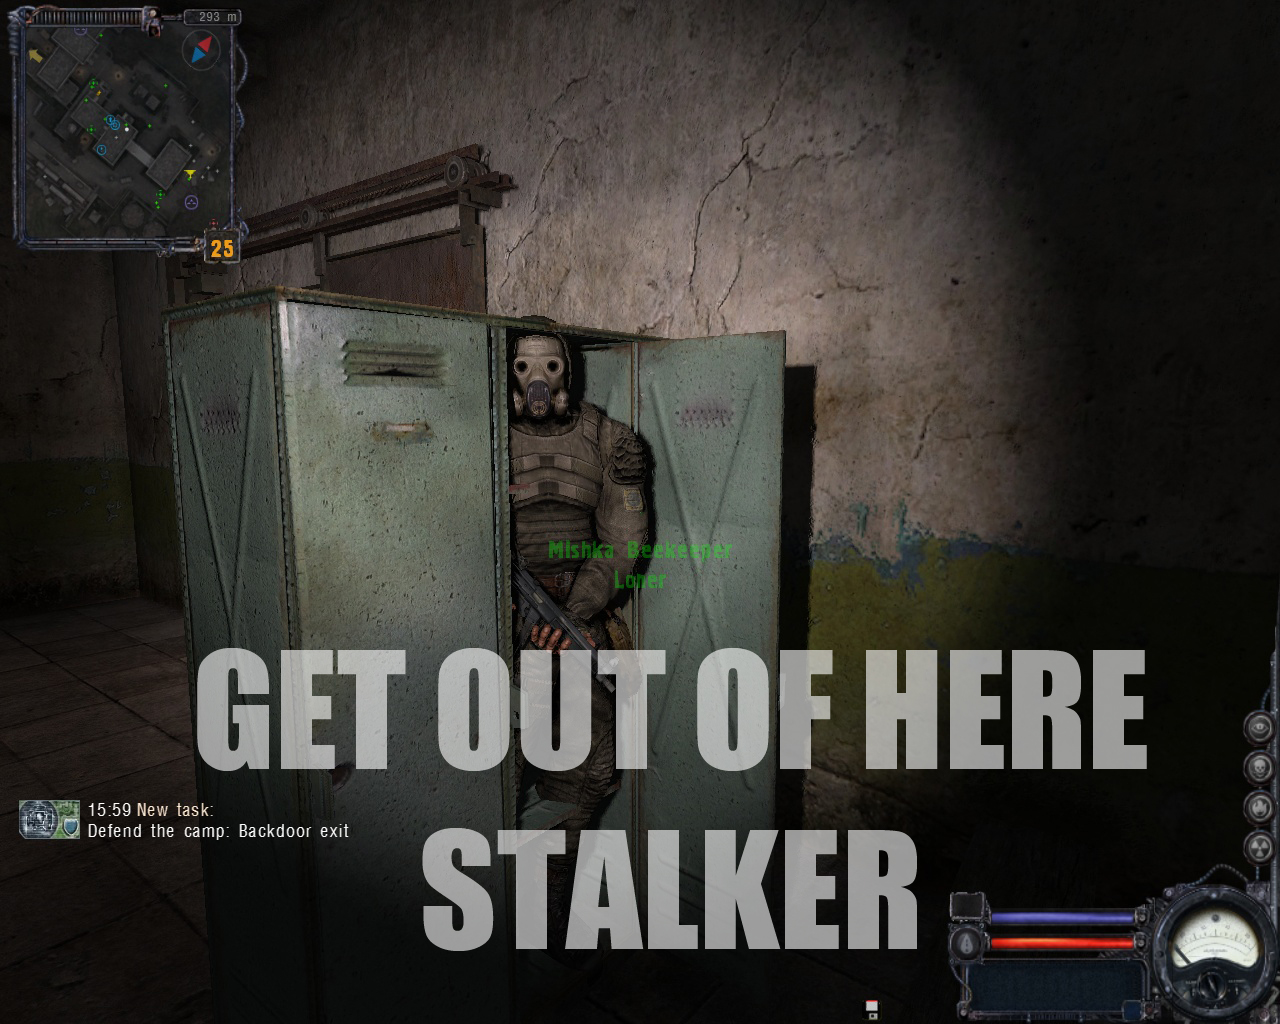 Image - 95141] | Get Out Of Here, Stalker | Know Your Meme